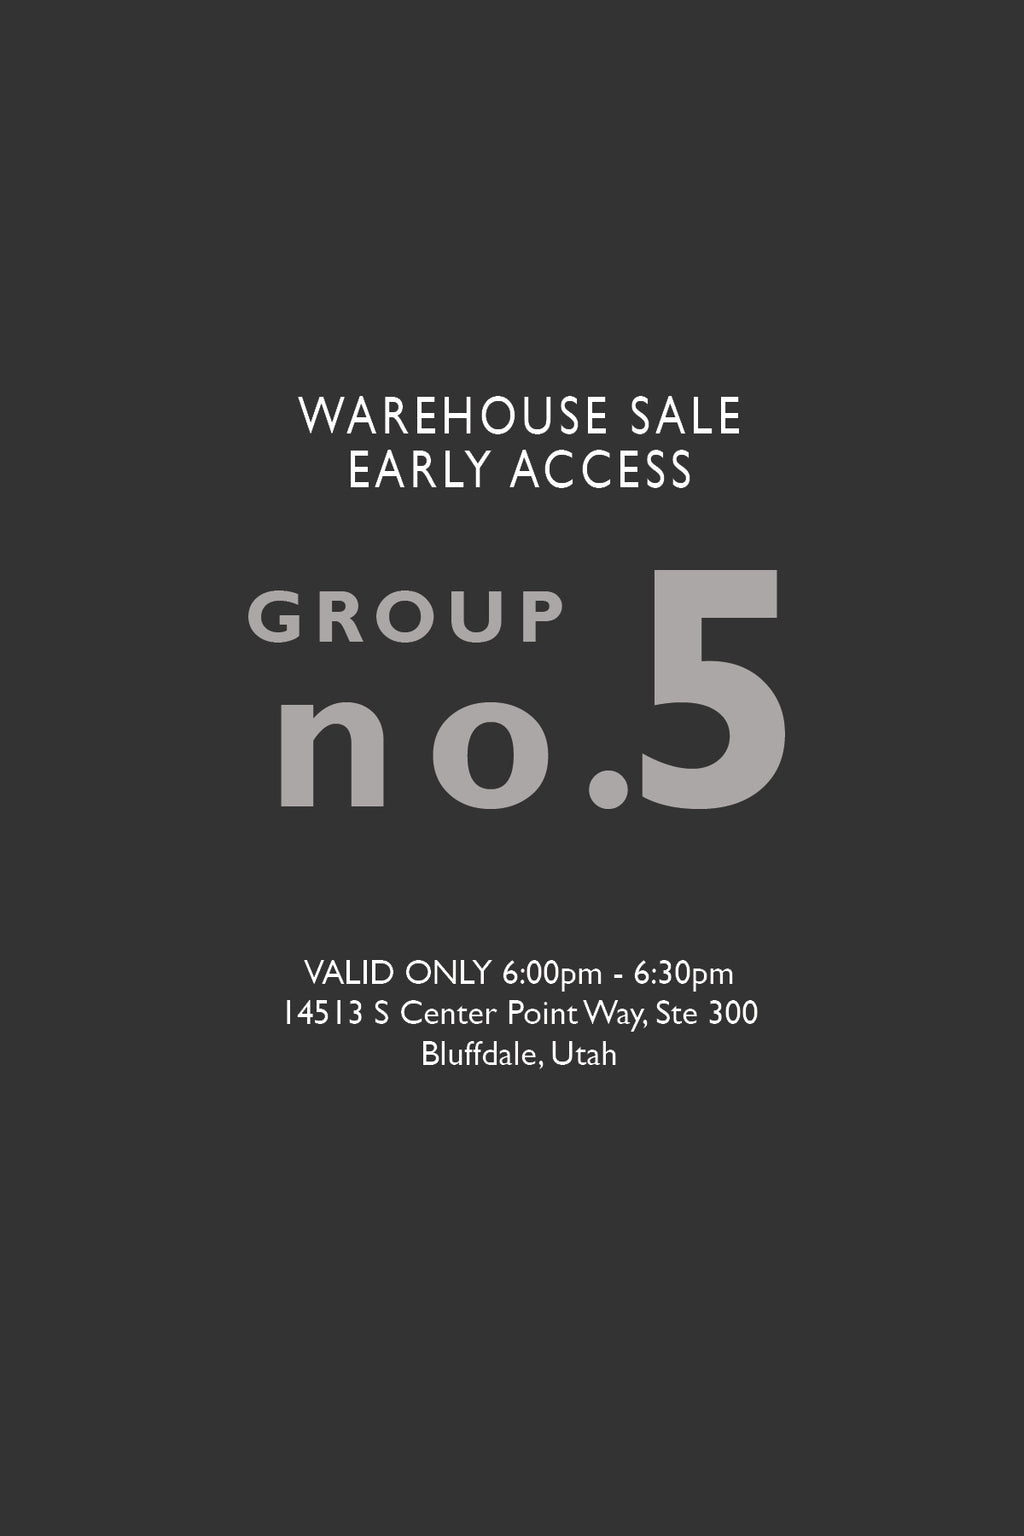 Warehouse Sale EARLY ACCESS: Group No. 5 | 6:00-6:30pm